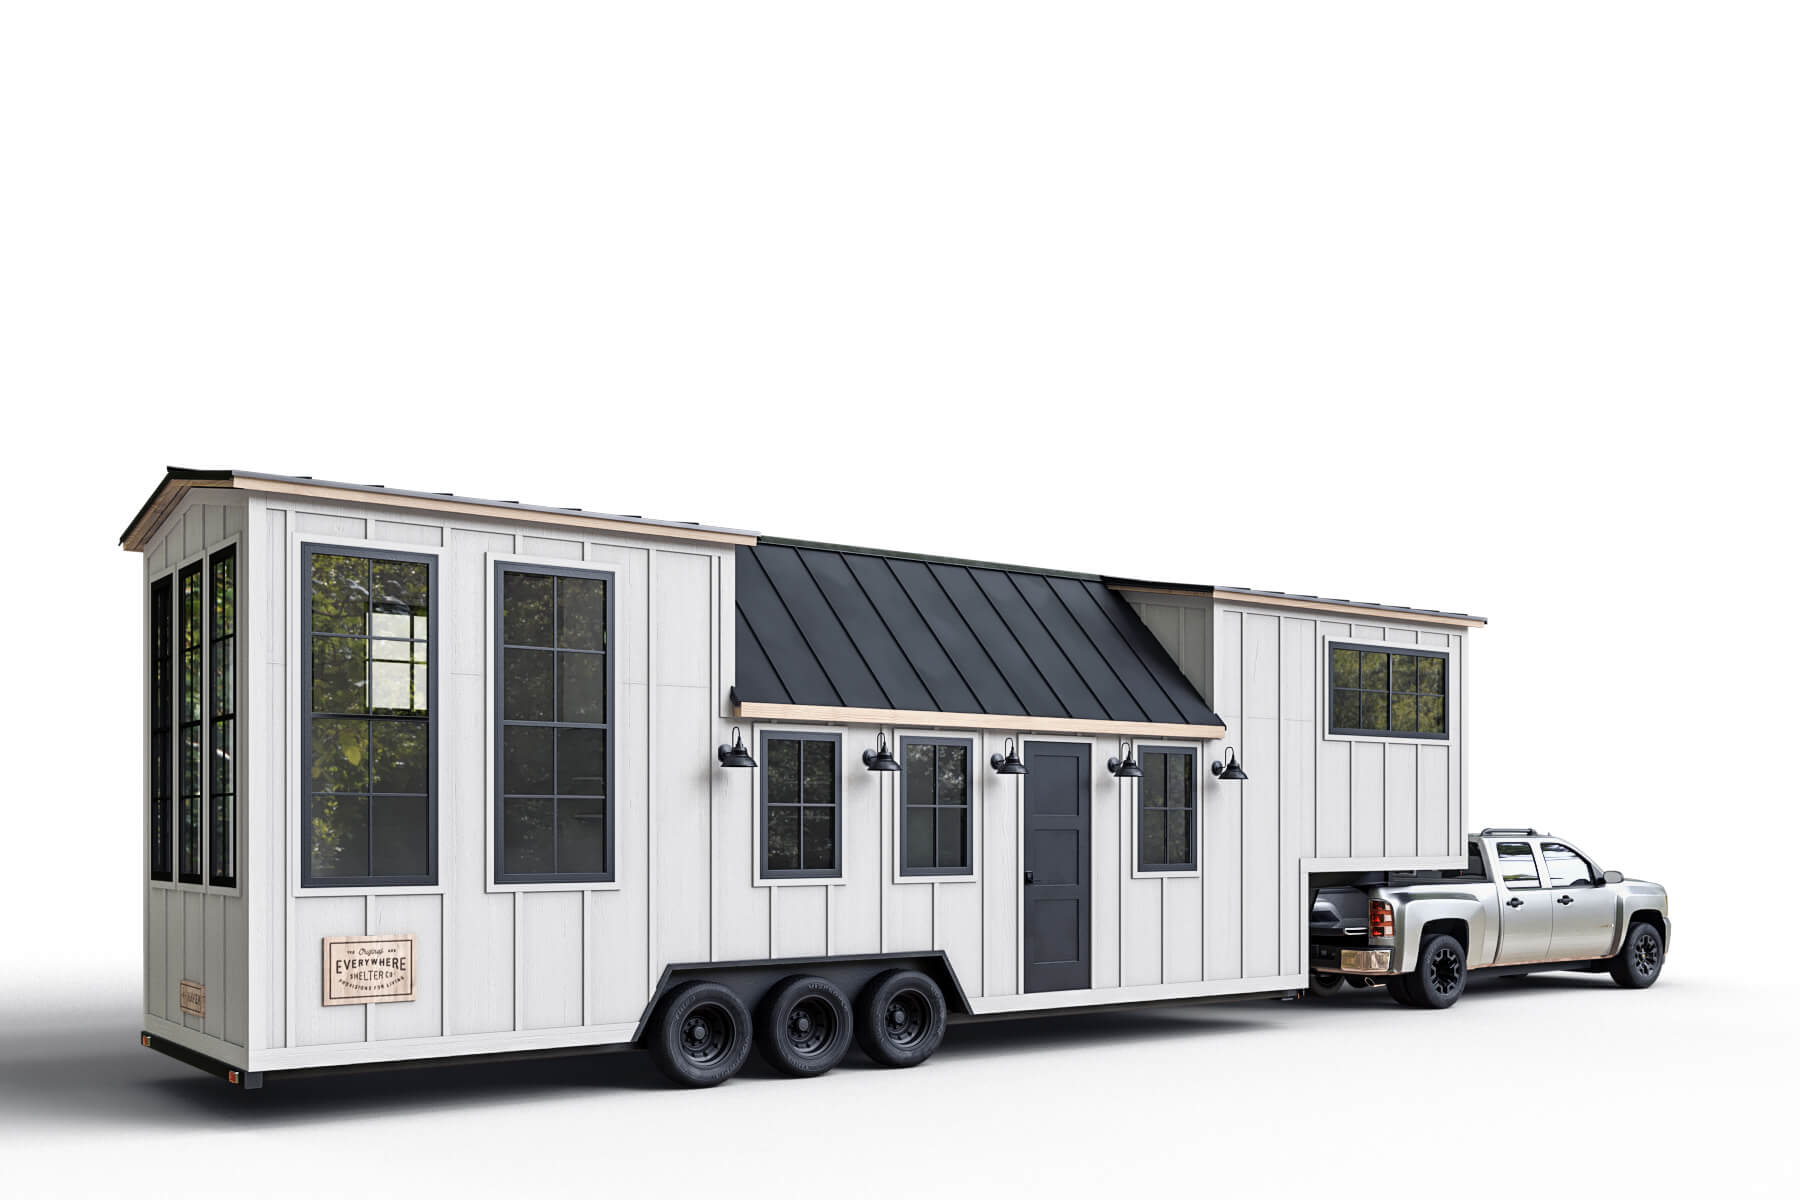 The Haven is a 38′ foot, gooseneck tiny home on wheels with tall ceilings and expansive glass windows to enjoy the views. One of the larger tiny houses out there, it's 354 square feet of living space is packaged onto an efficient and moveable trailer so you can take your home with you wherever you go.